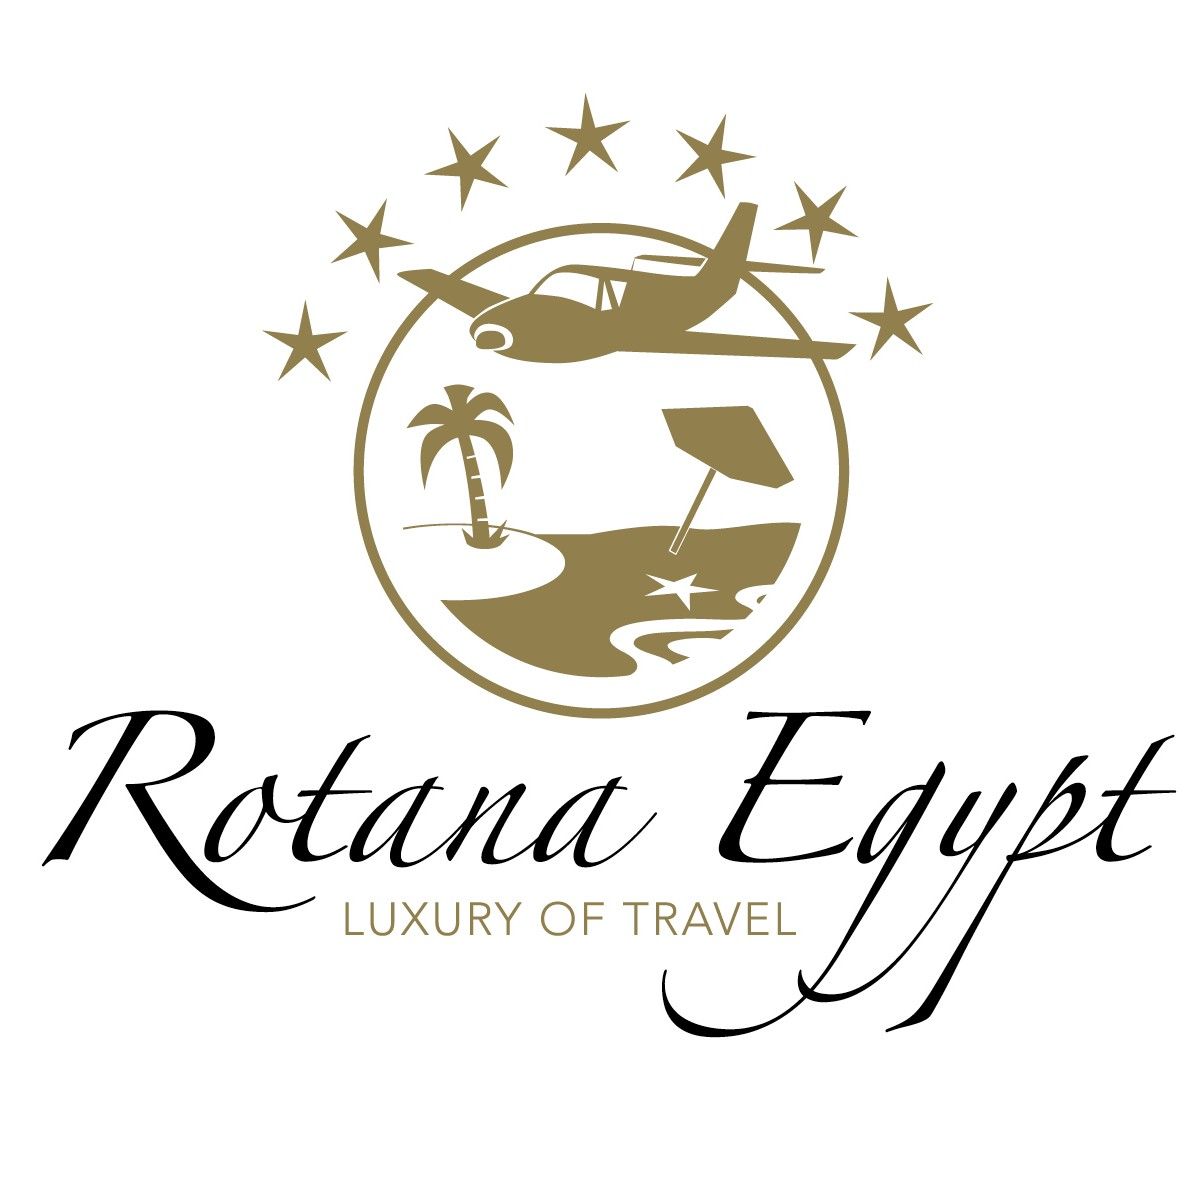 Rotana Egypt Travel's logo